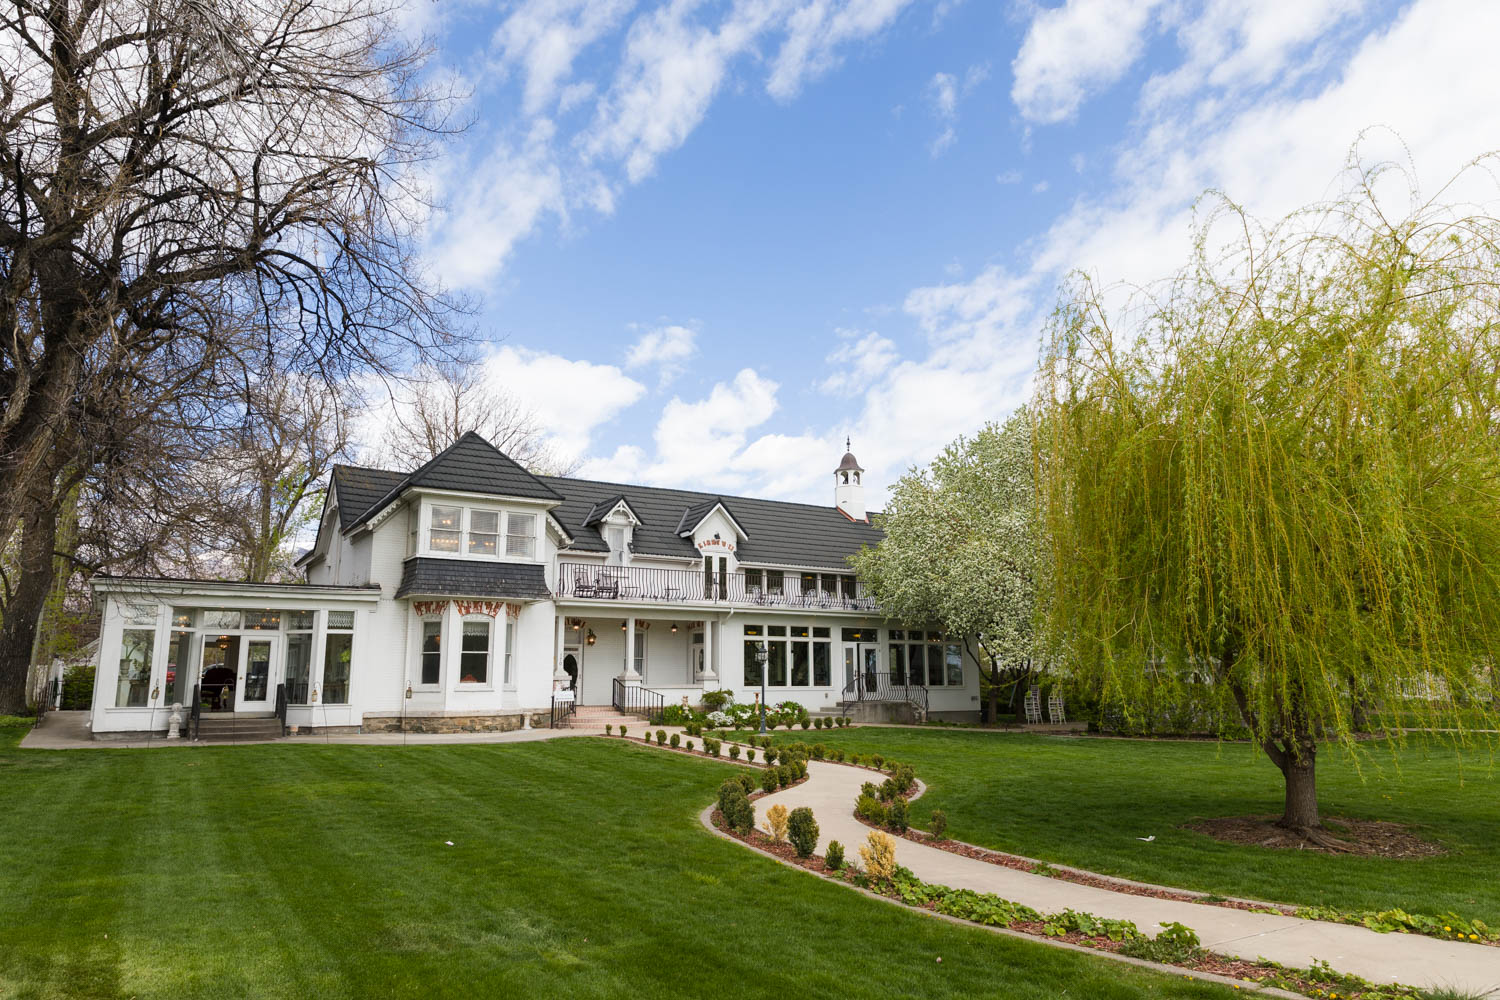 Chantilly Mansion in Layton, Utah